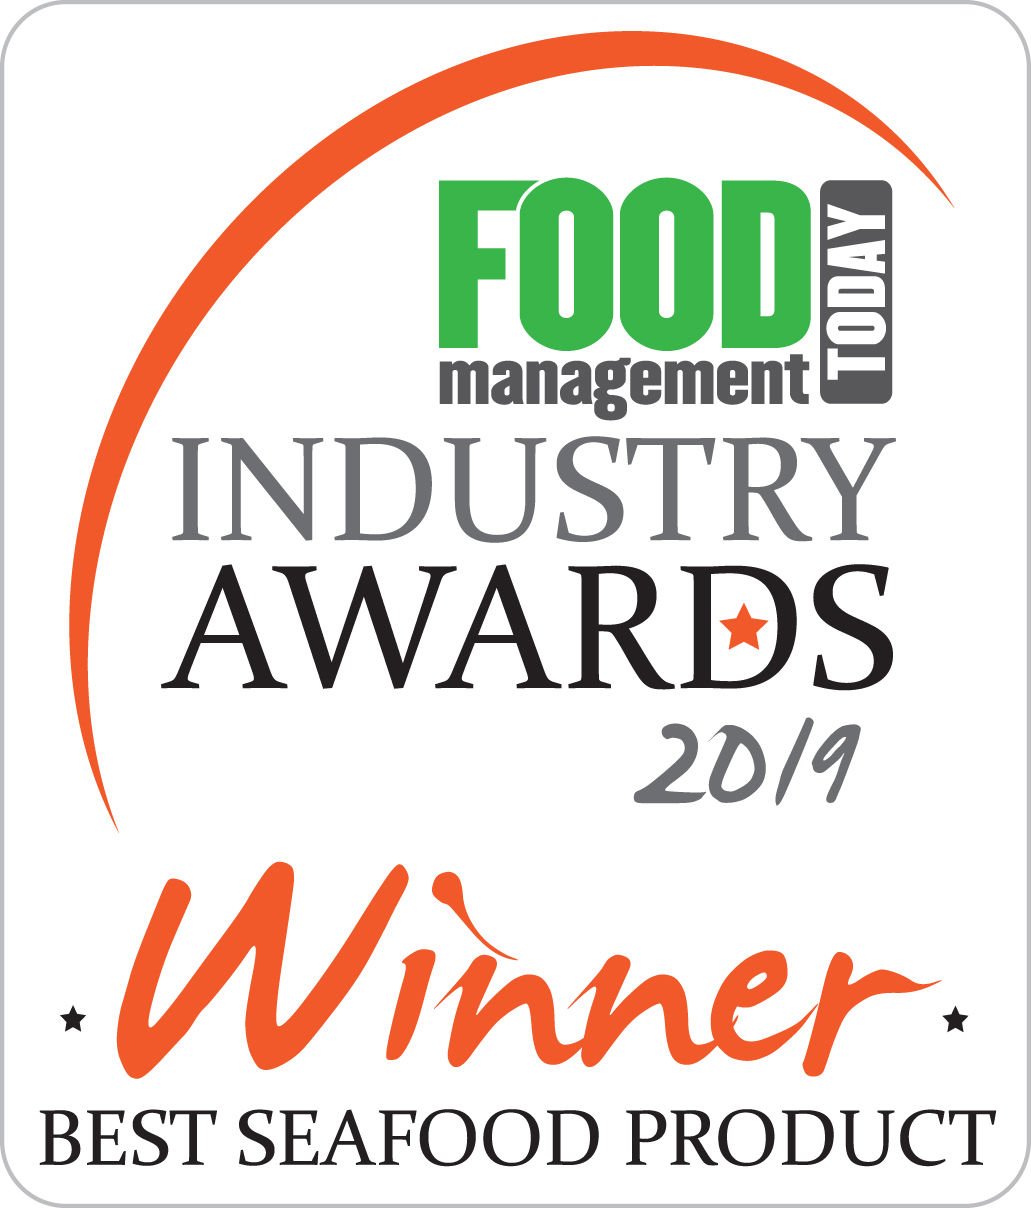 Winner of Best Seafood Product, 2019